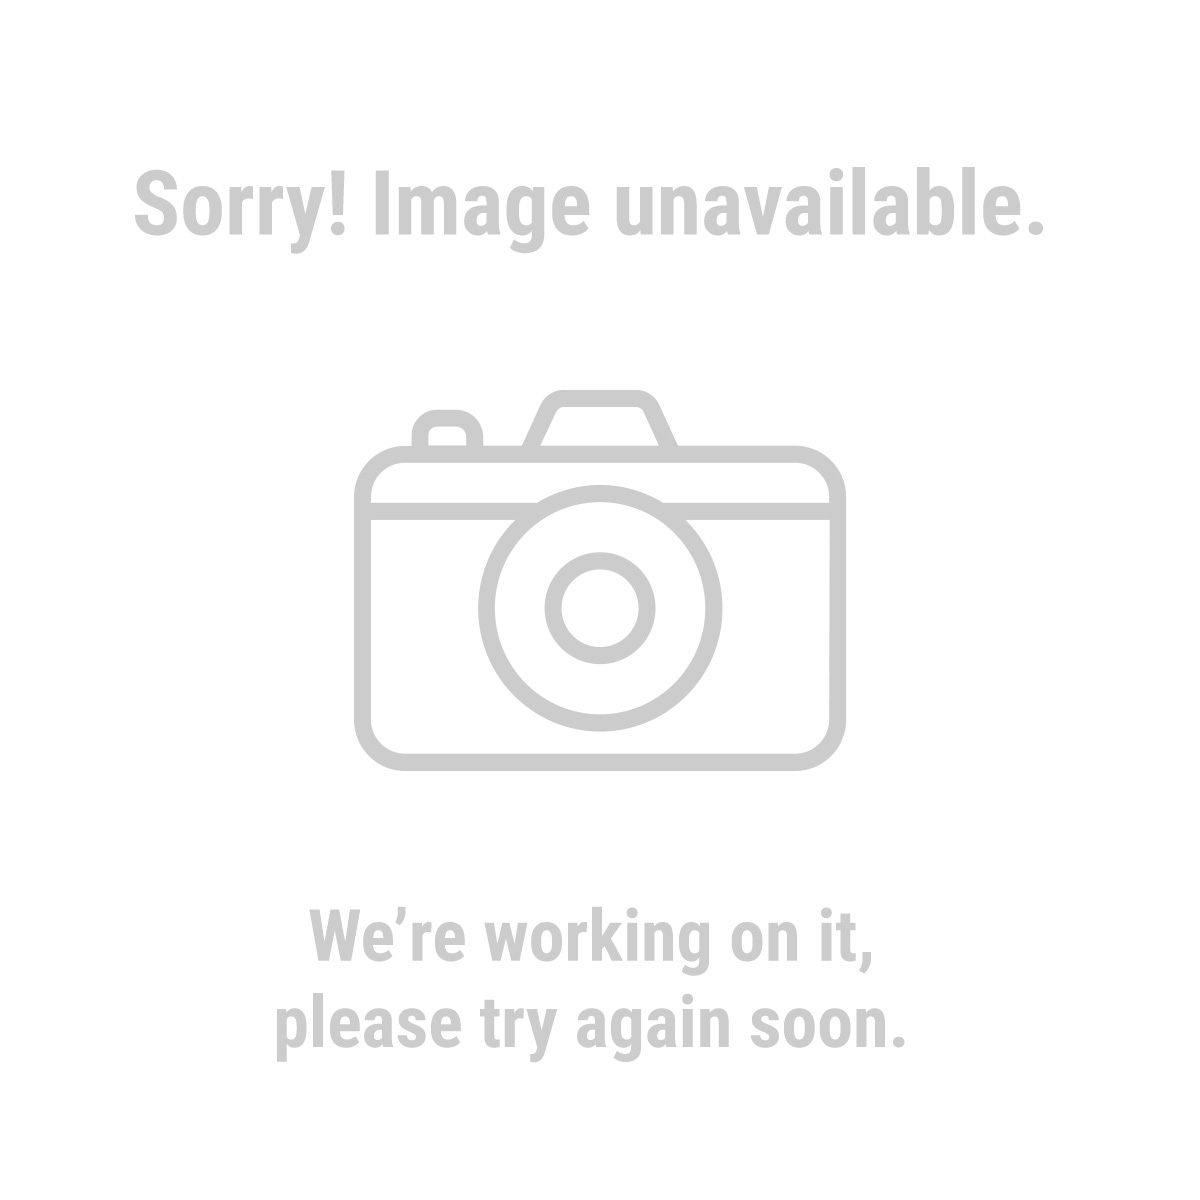 5 speed 1/2 hp benchtop wood lathe